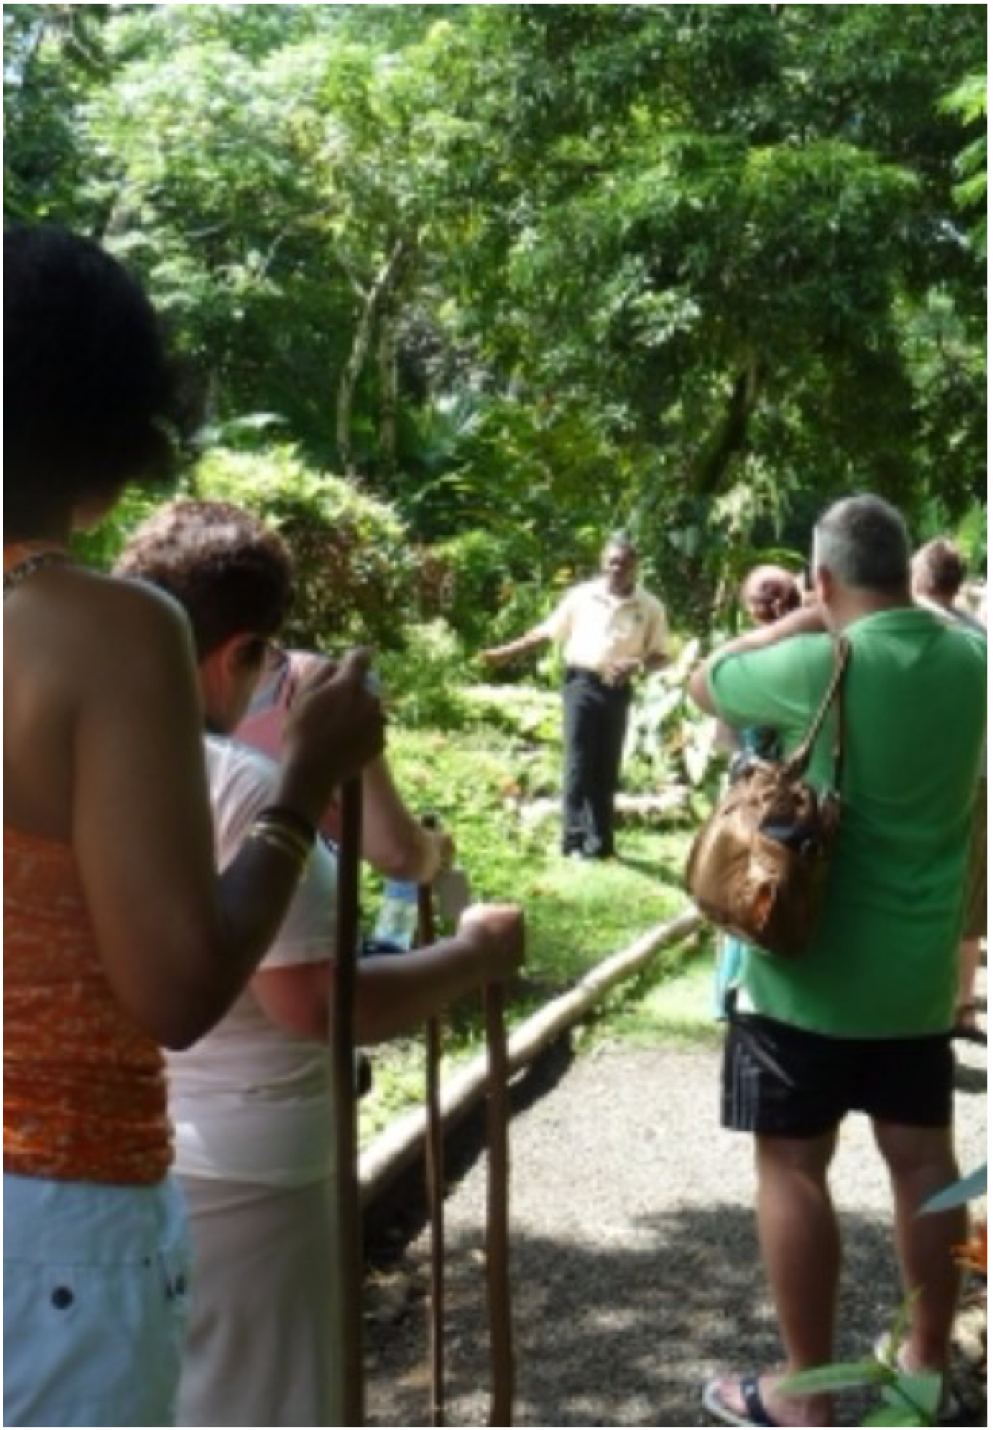 LUSHAN COUNTRY LIFE   A family owned and run tour and an authentic insight into the Saint Lucian culture. Explore the St Lucians' ancestors and forefathers traditional houses, discover the island's spices, fruits and tropical birds through the garden and rainforest trails. A tour for the whole family to enjoy.